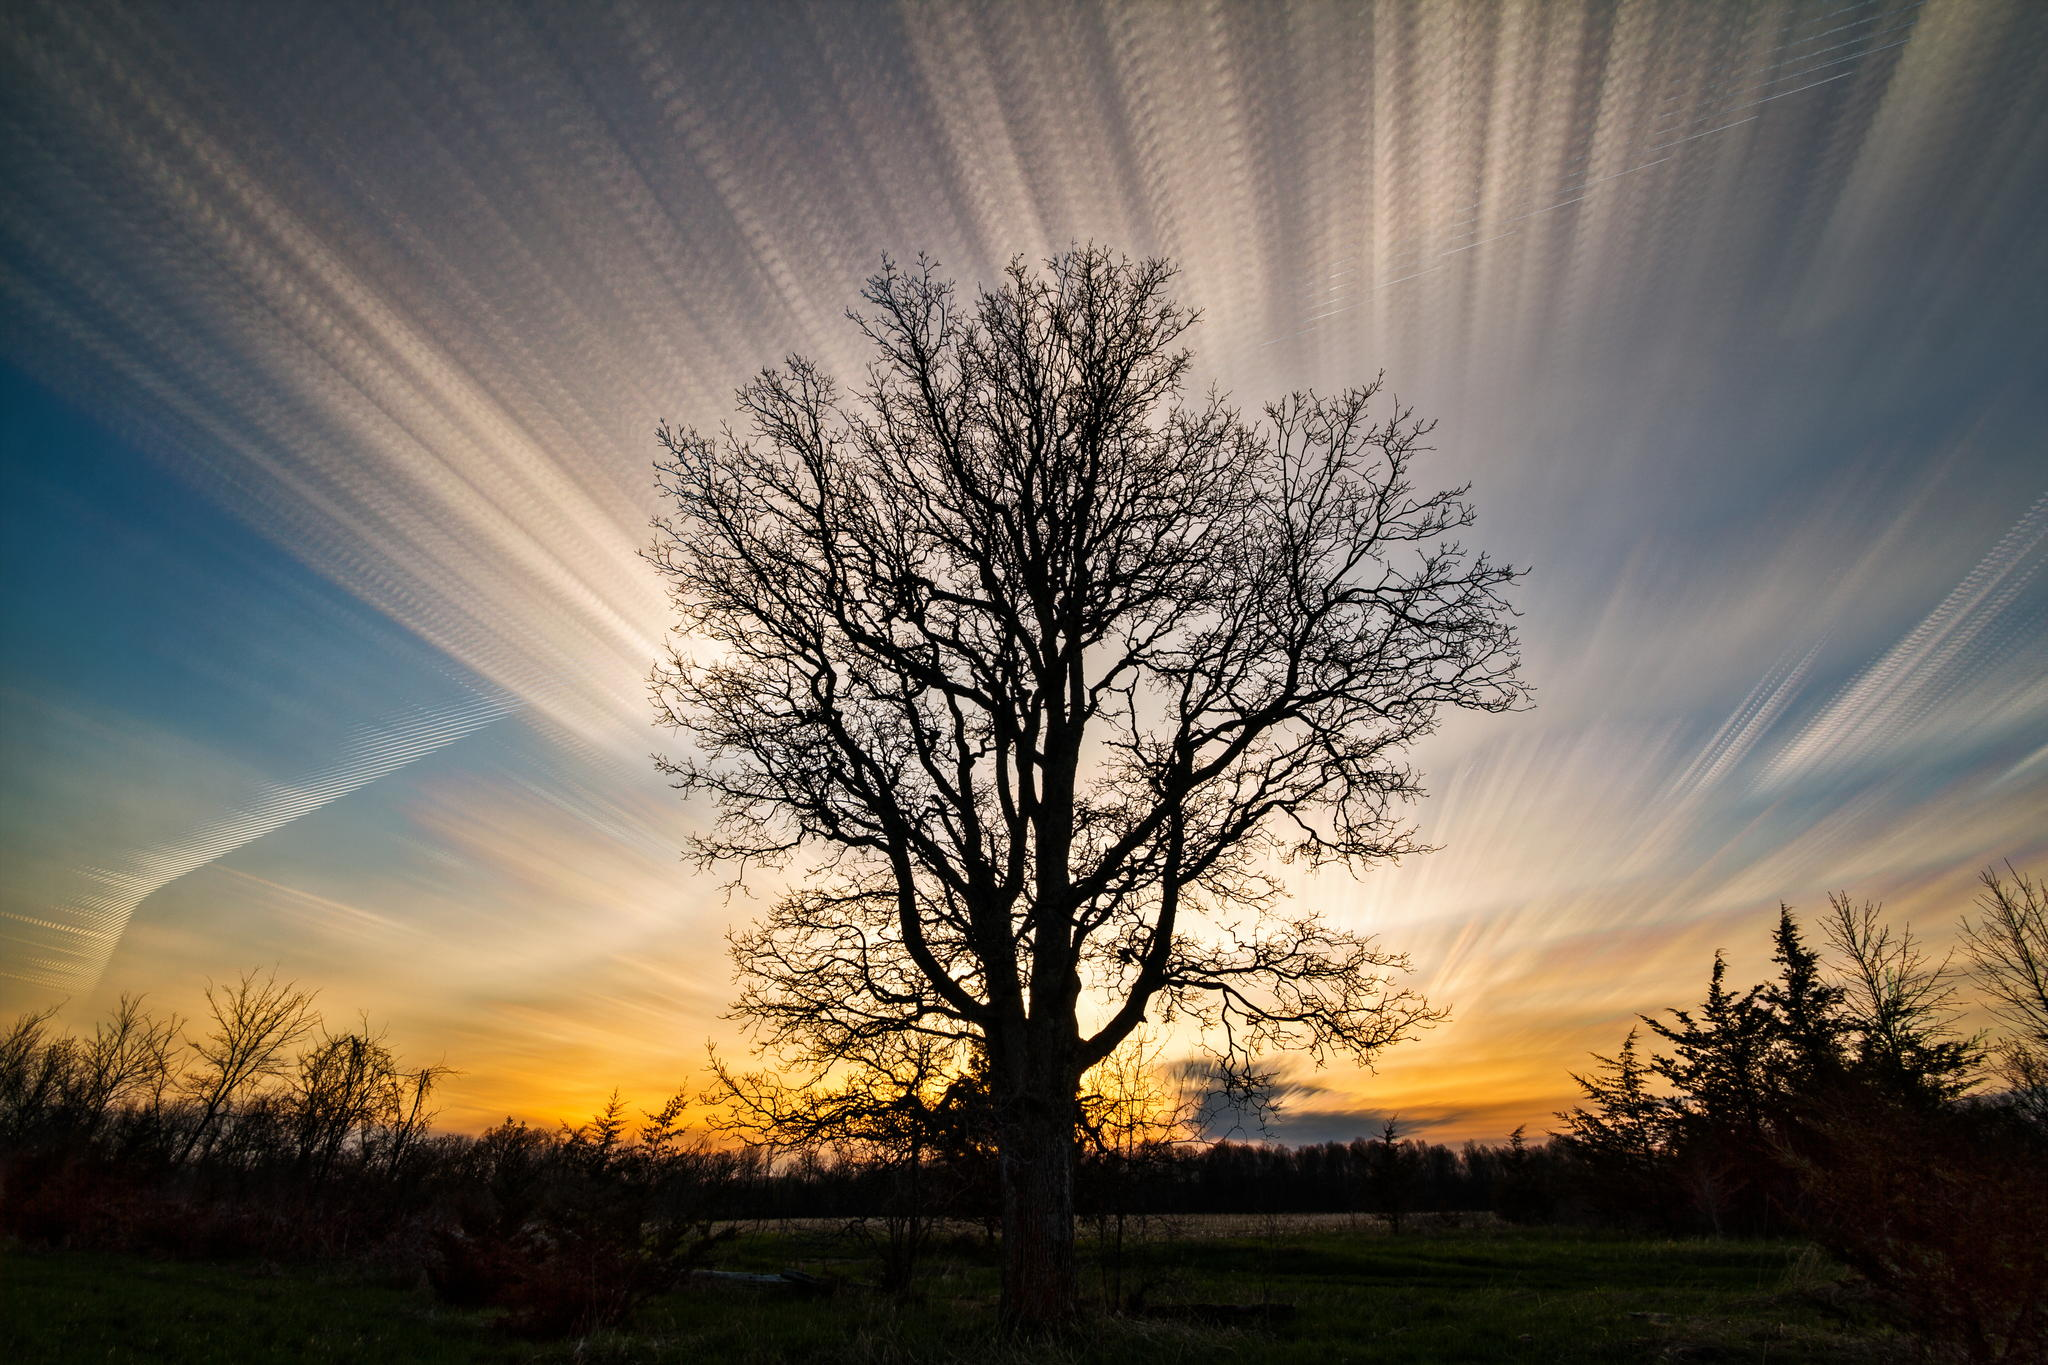 Photograph Reach for the Clouds by Matt Molloy on 500px